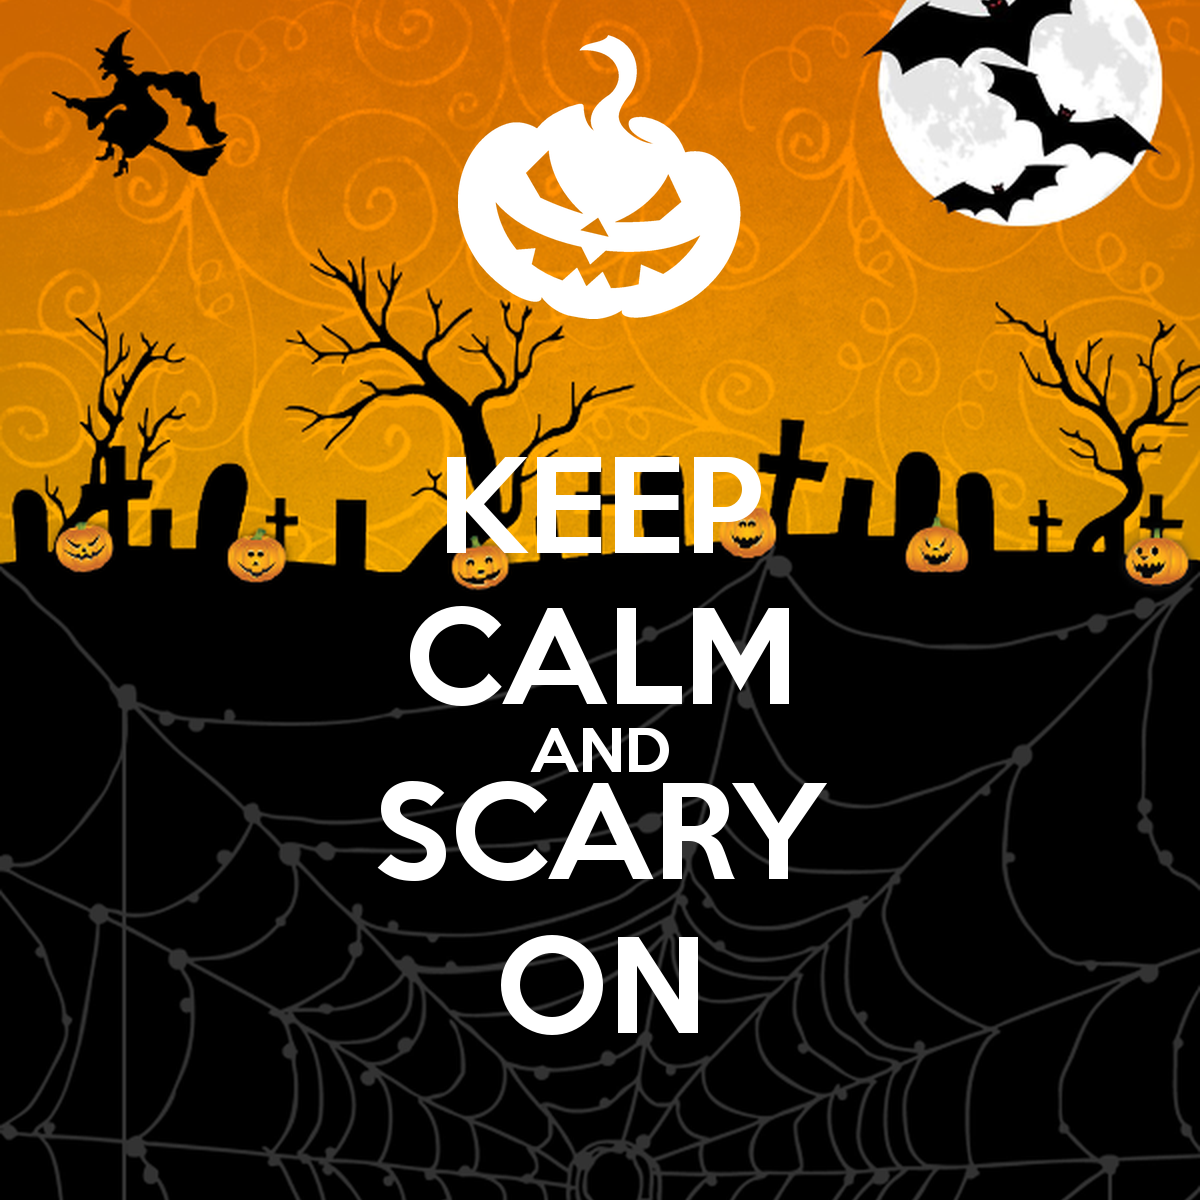 keep-calm-and-scary-on-159